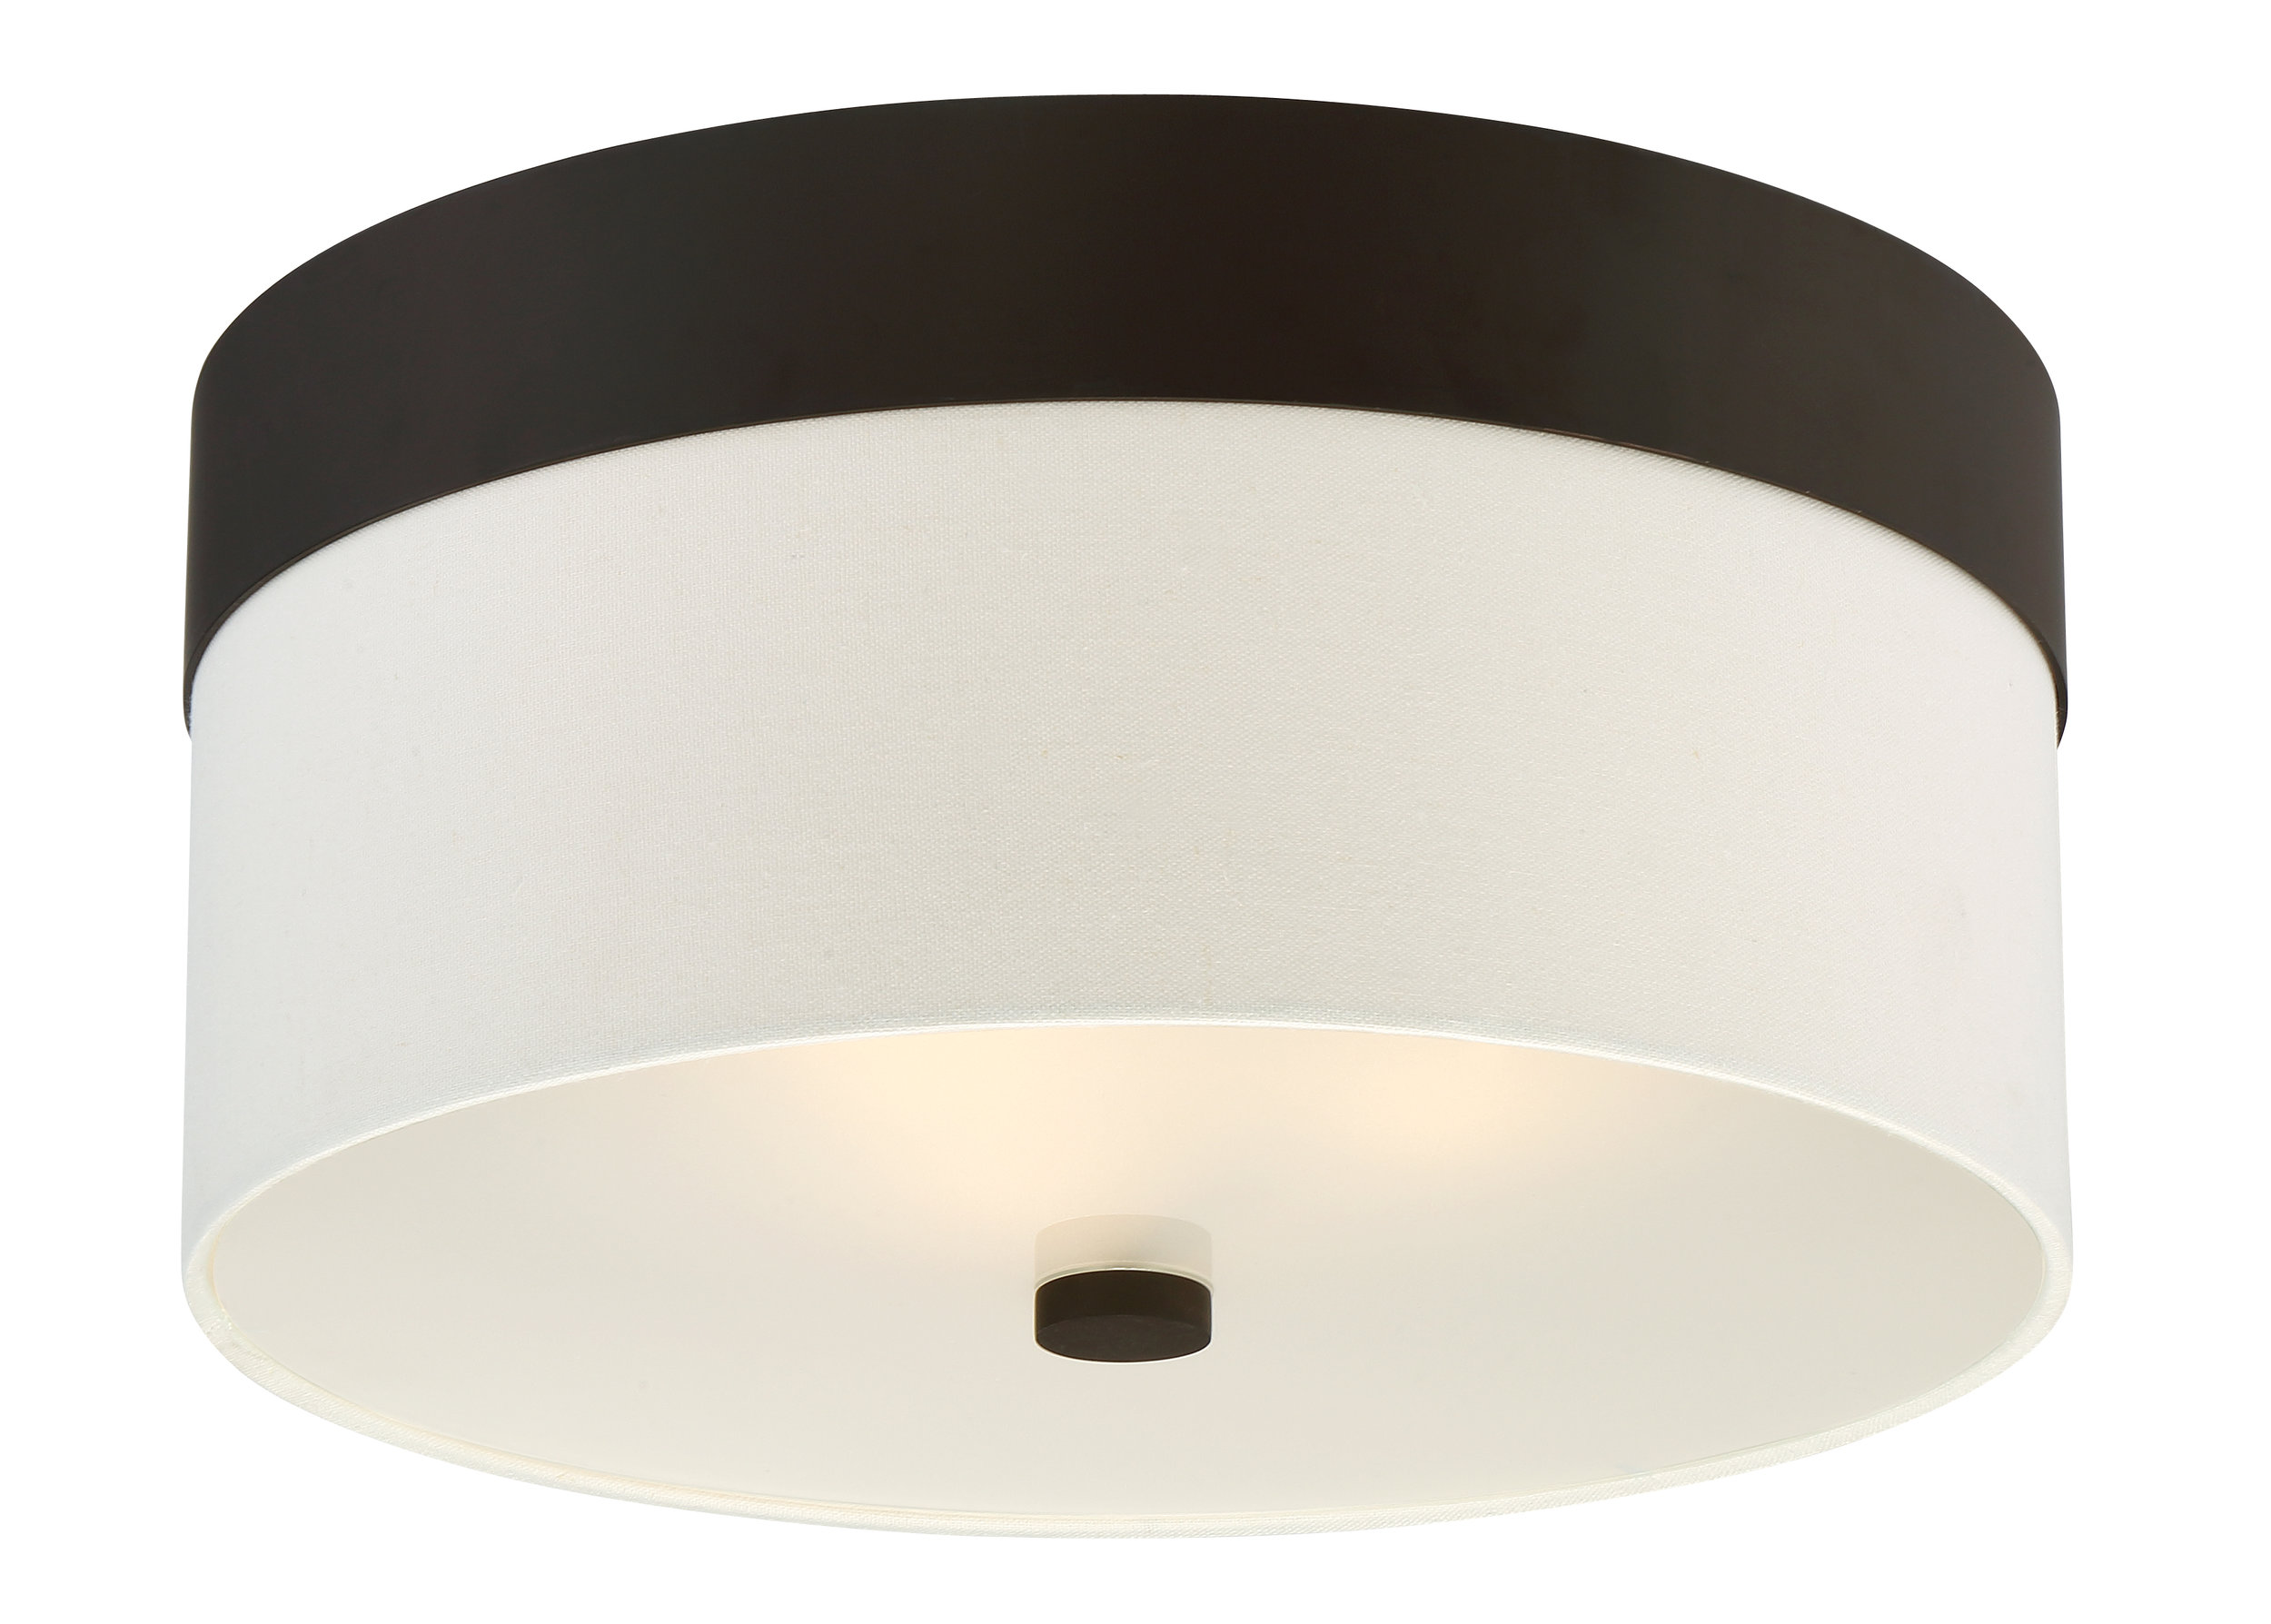 Grayson 3 Light Dark Bronze Ceiling Mount